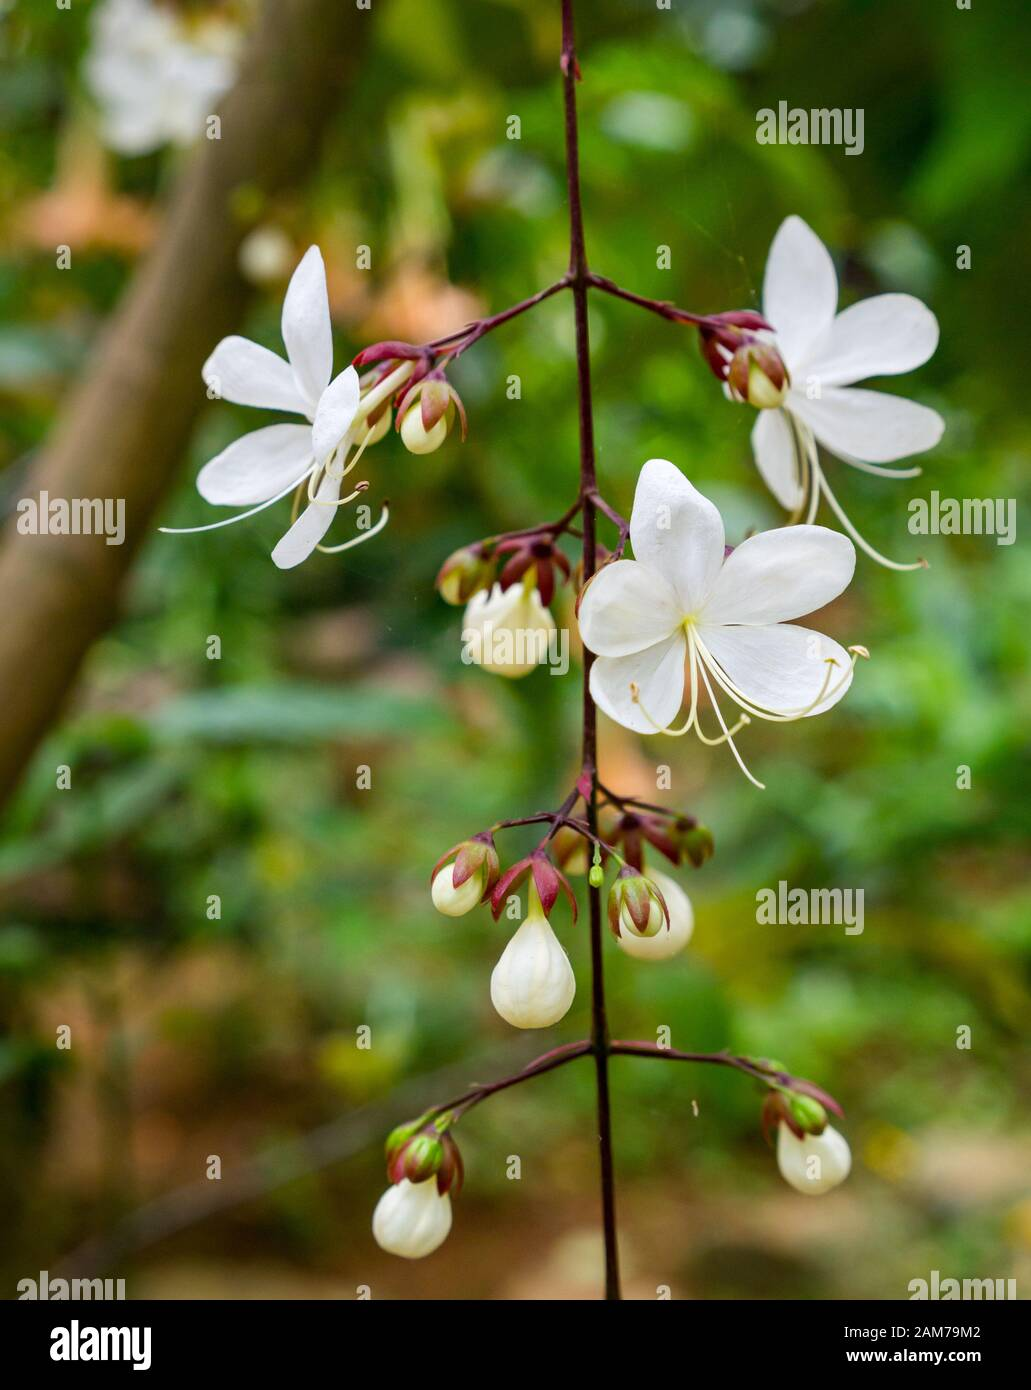 pretty-white-flowers-on-climbing-plant-t